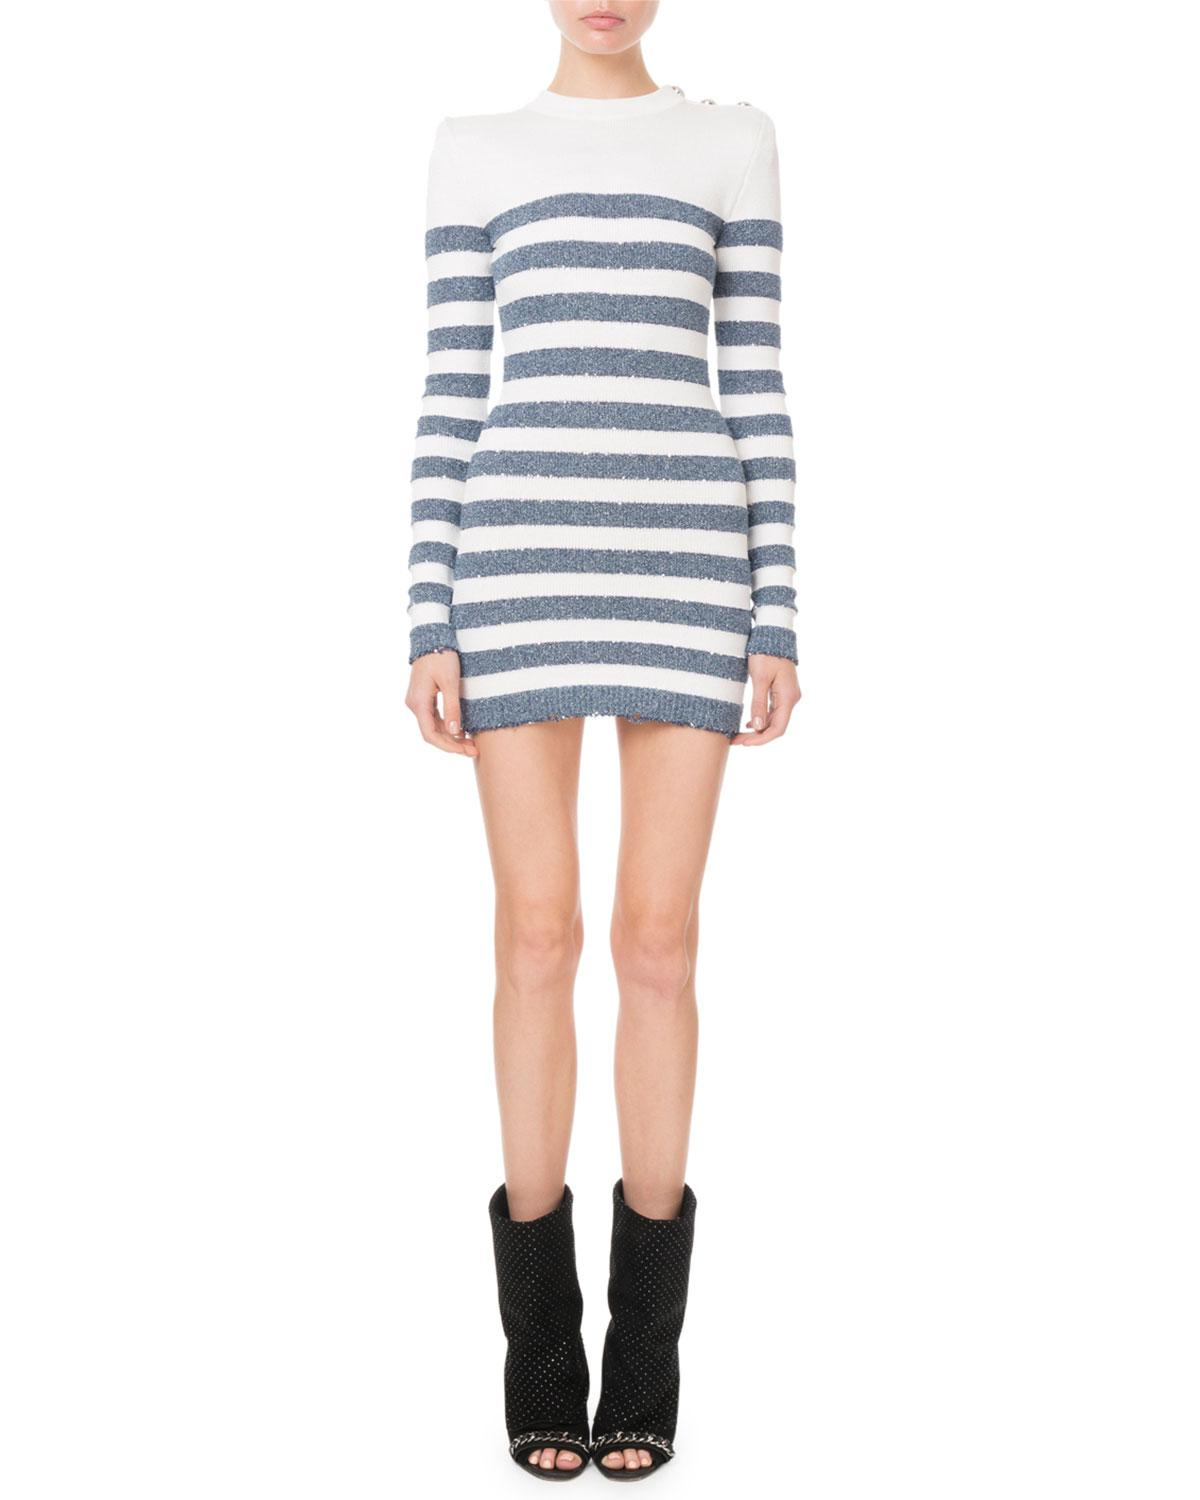 5c00af4ad907 Lyst - Balmain Sequinned Striped Knit Mini Dress in Blue - Save 17%